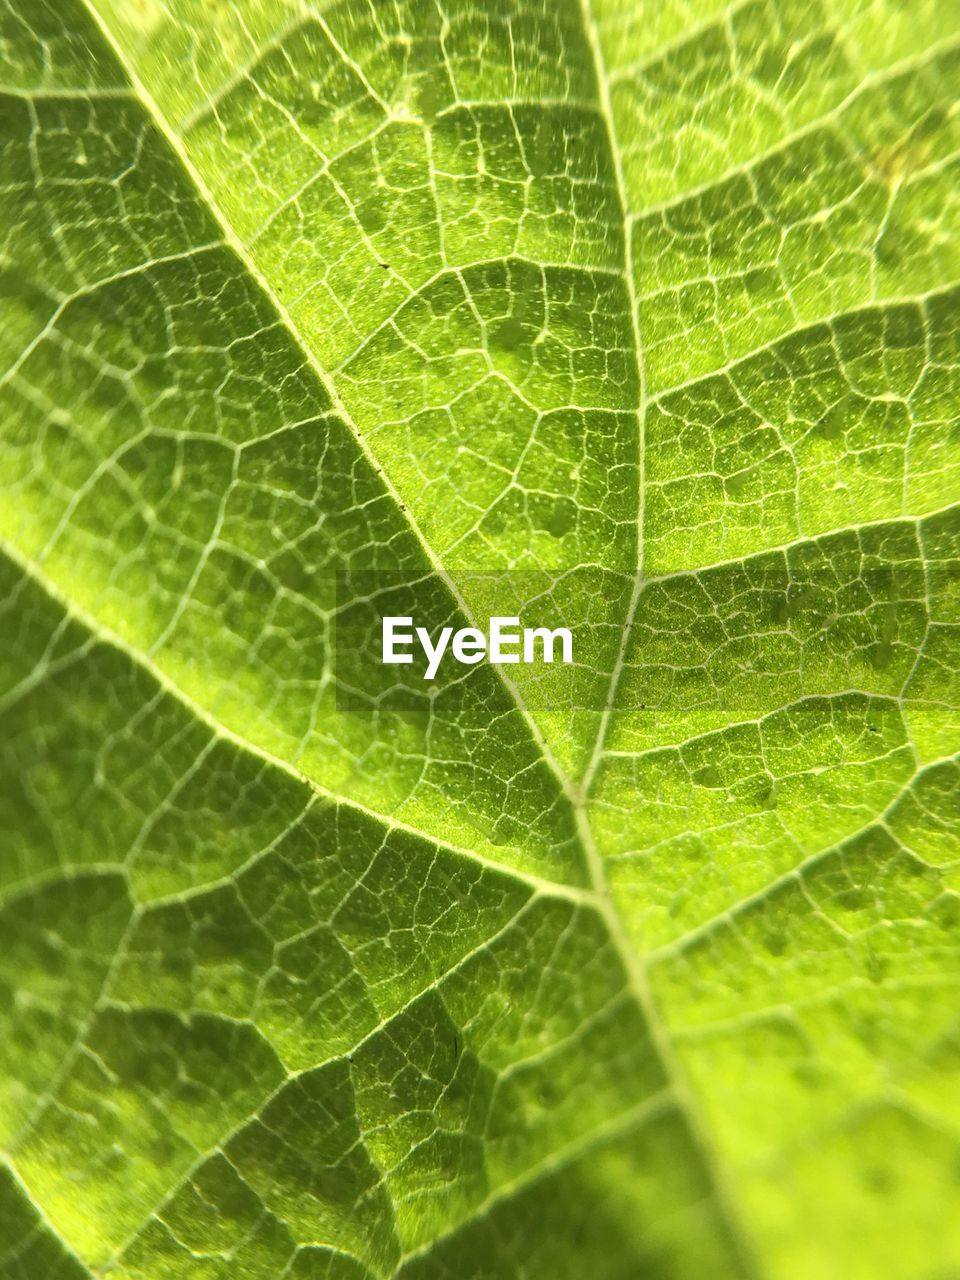 leaf, backgrounds, green color, full frame, close-up, nature, no people, day, growth, freshness, fragility, beauty in nature, outdoors